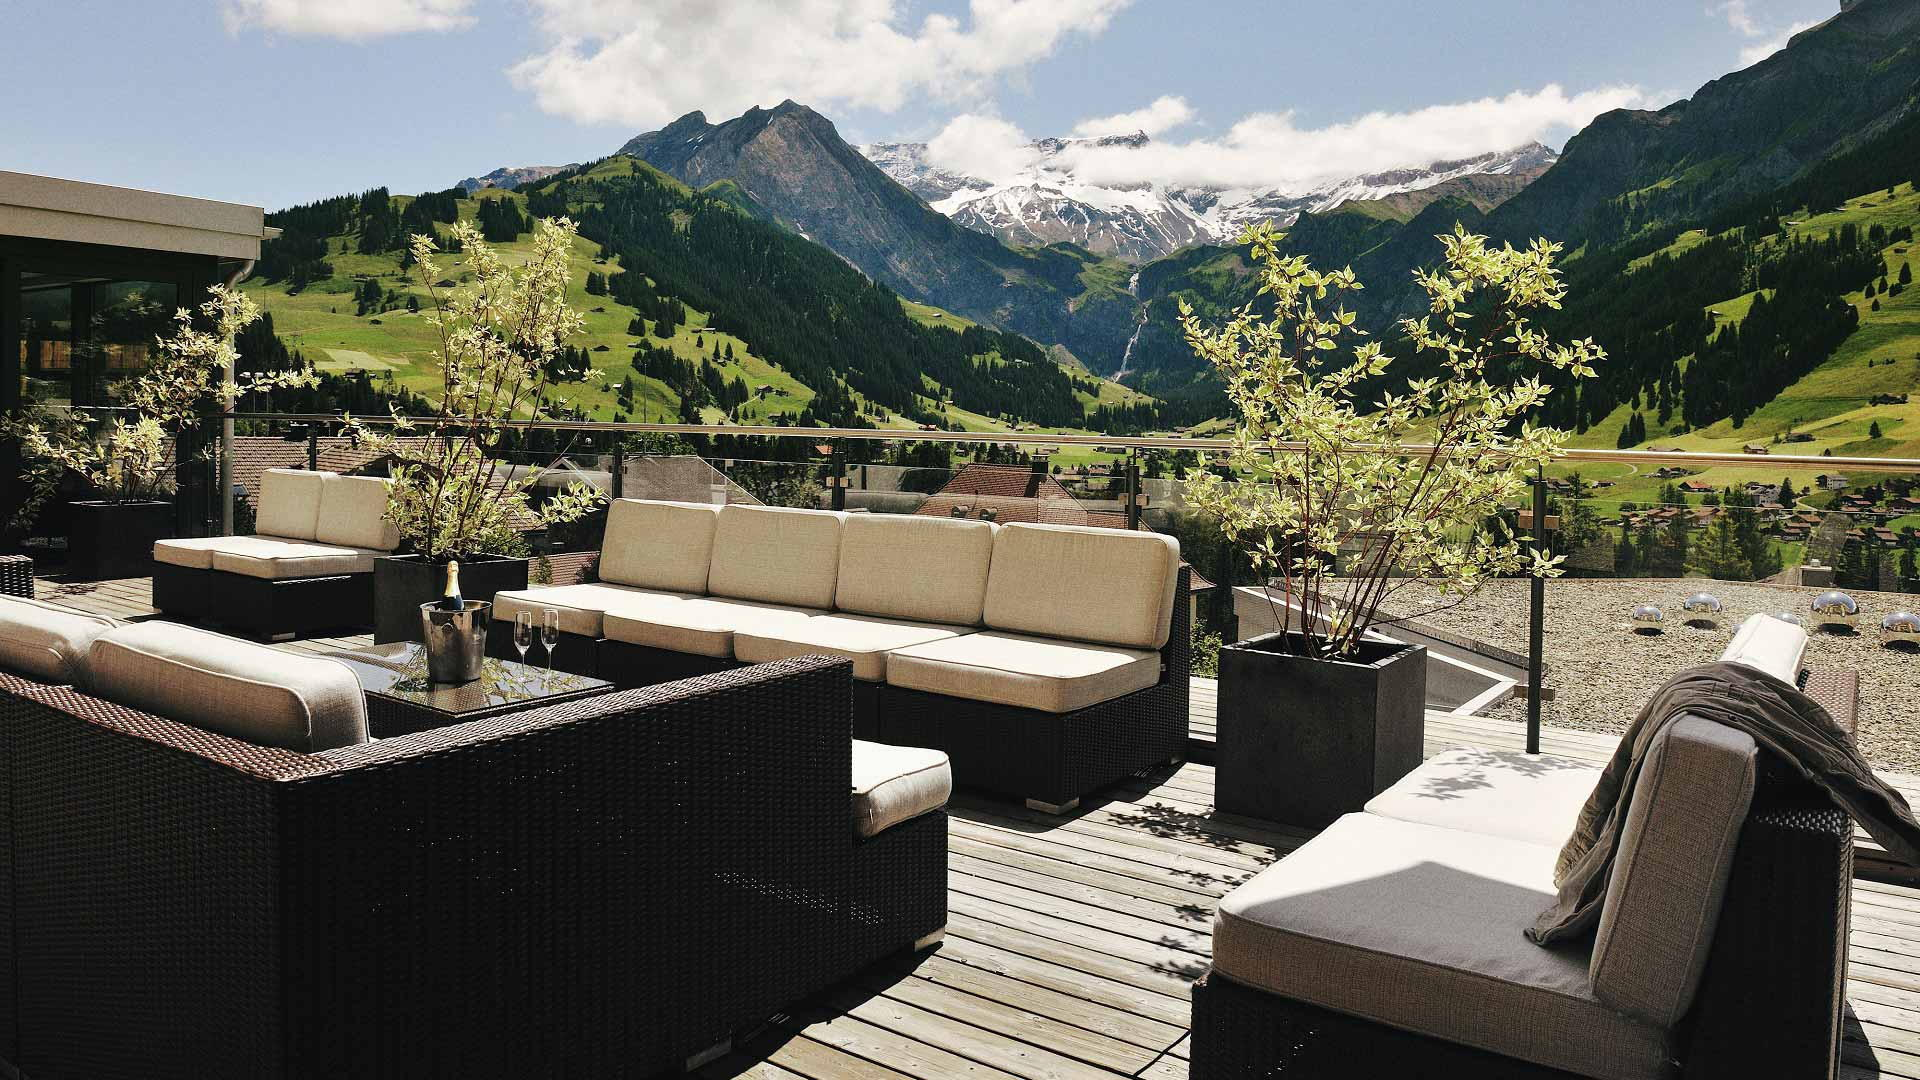 Luxury hotels in switzerland refined 5 star accommodation for Exclusive hotels